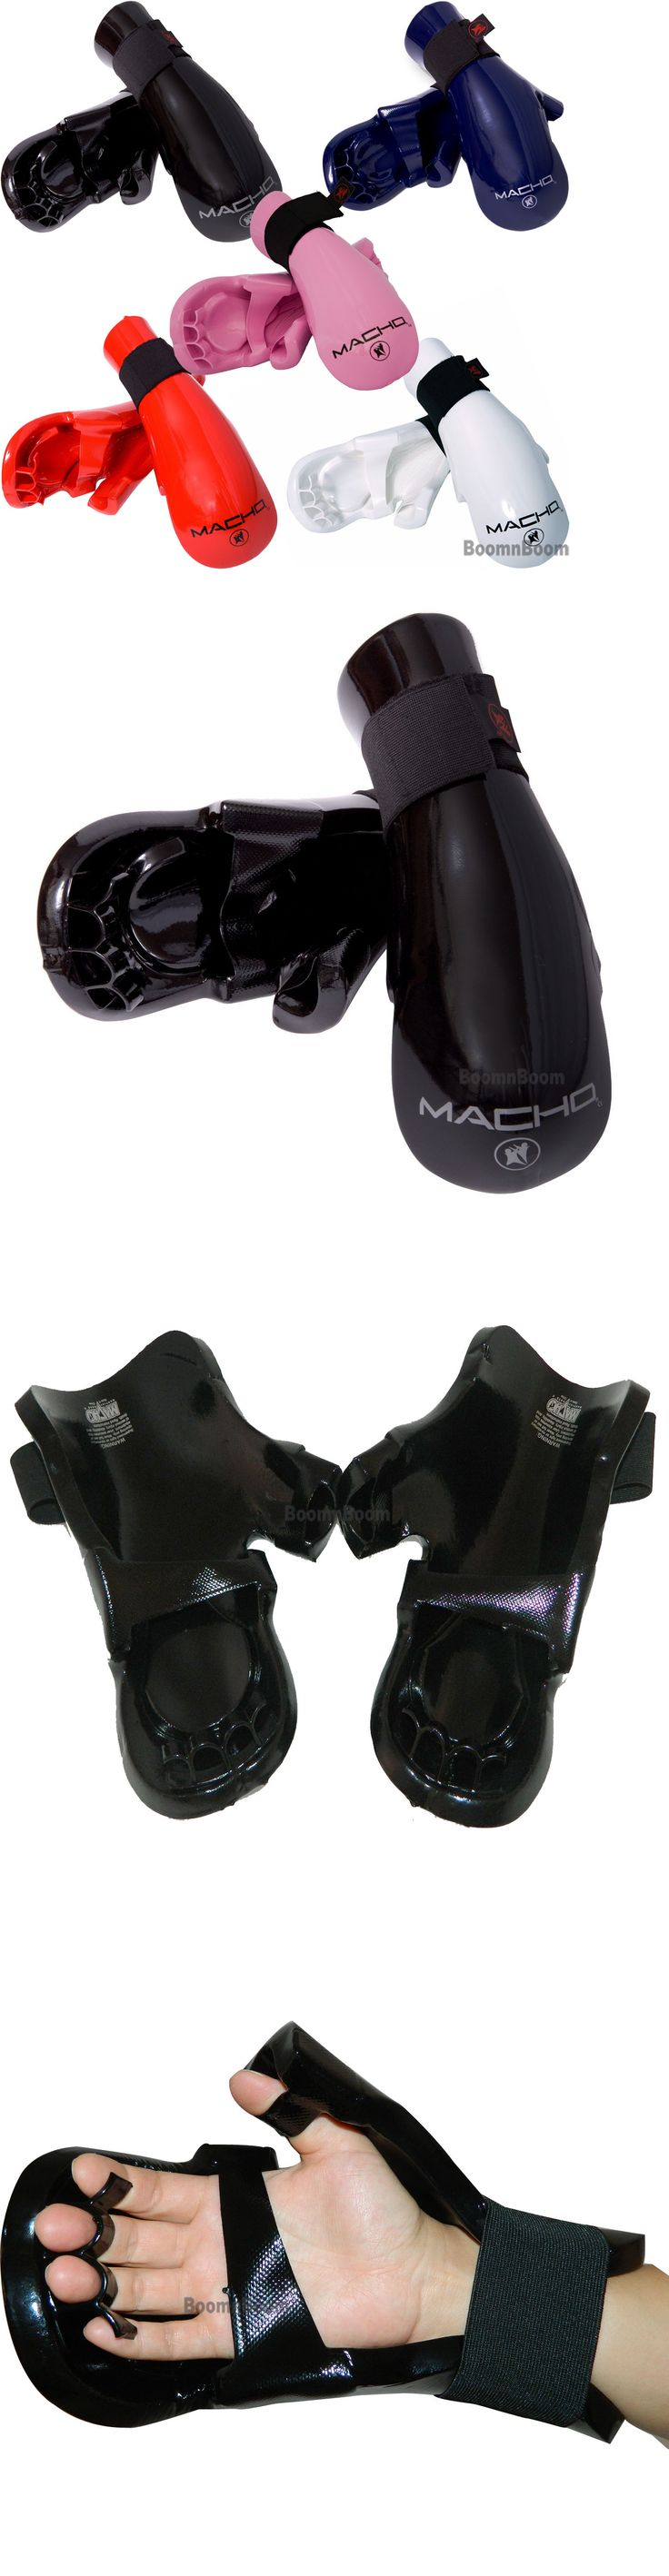 Hand Wraps 179779: Taekwondo Karate Mma Hand Protector Glove Macho Dyna Punch Mitts Sparring Gear -> BUY IT NOW ONLY: $30.0 on eBay!